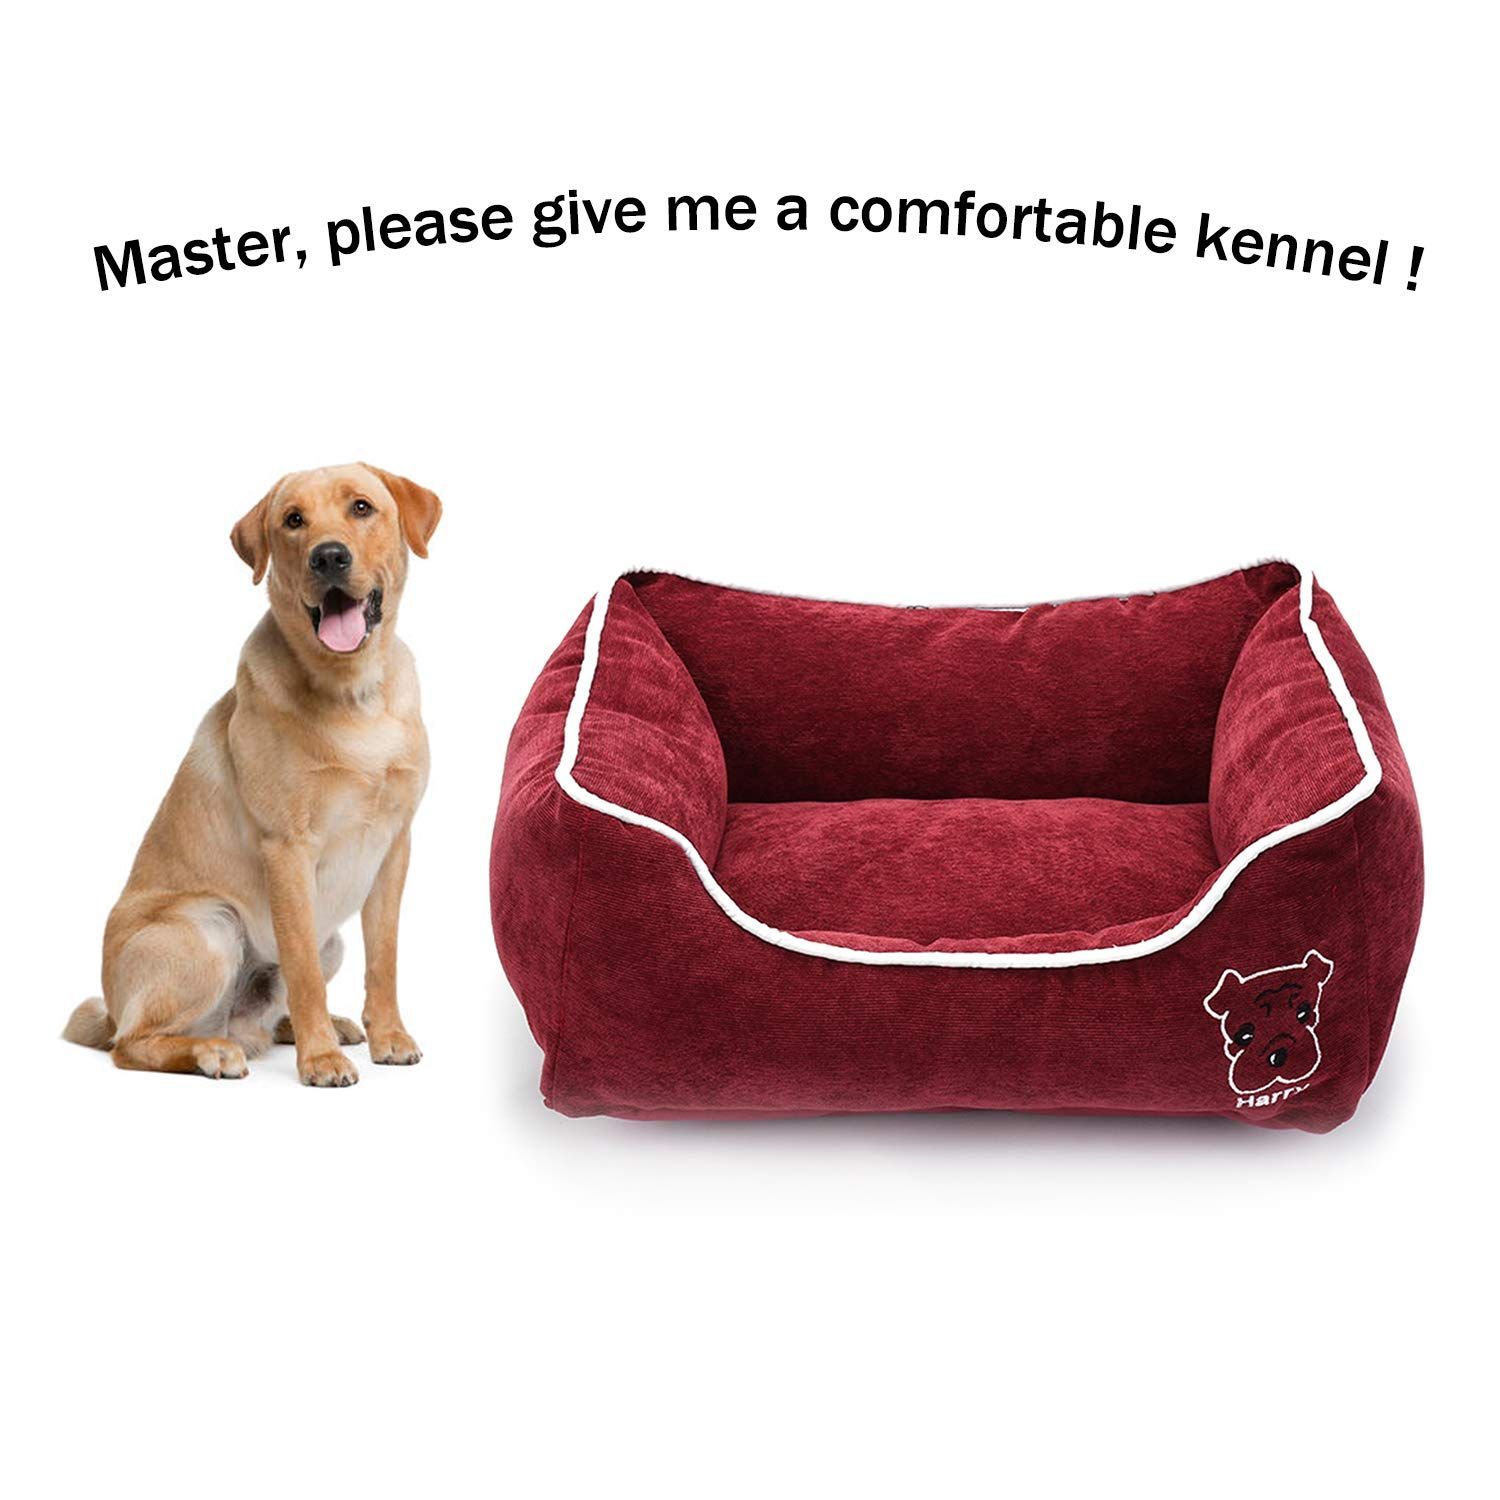 Simple Rectangular Pet Bed With Removable Cover Plush Comfy Durable Cuddler For Dogs And Cats Machine Washable Cover Med Dog Pet Beds Dog Bed Furniture Dog Cat Pet bed with removable cover